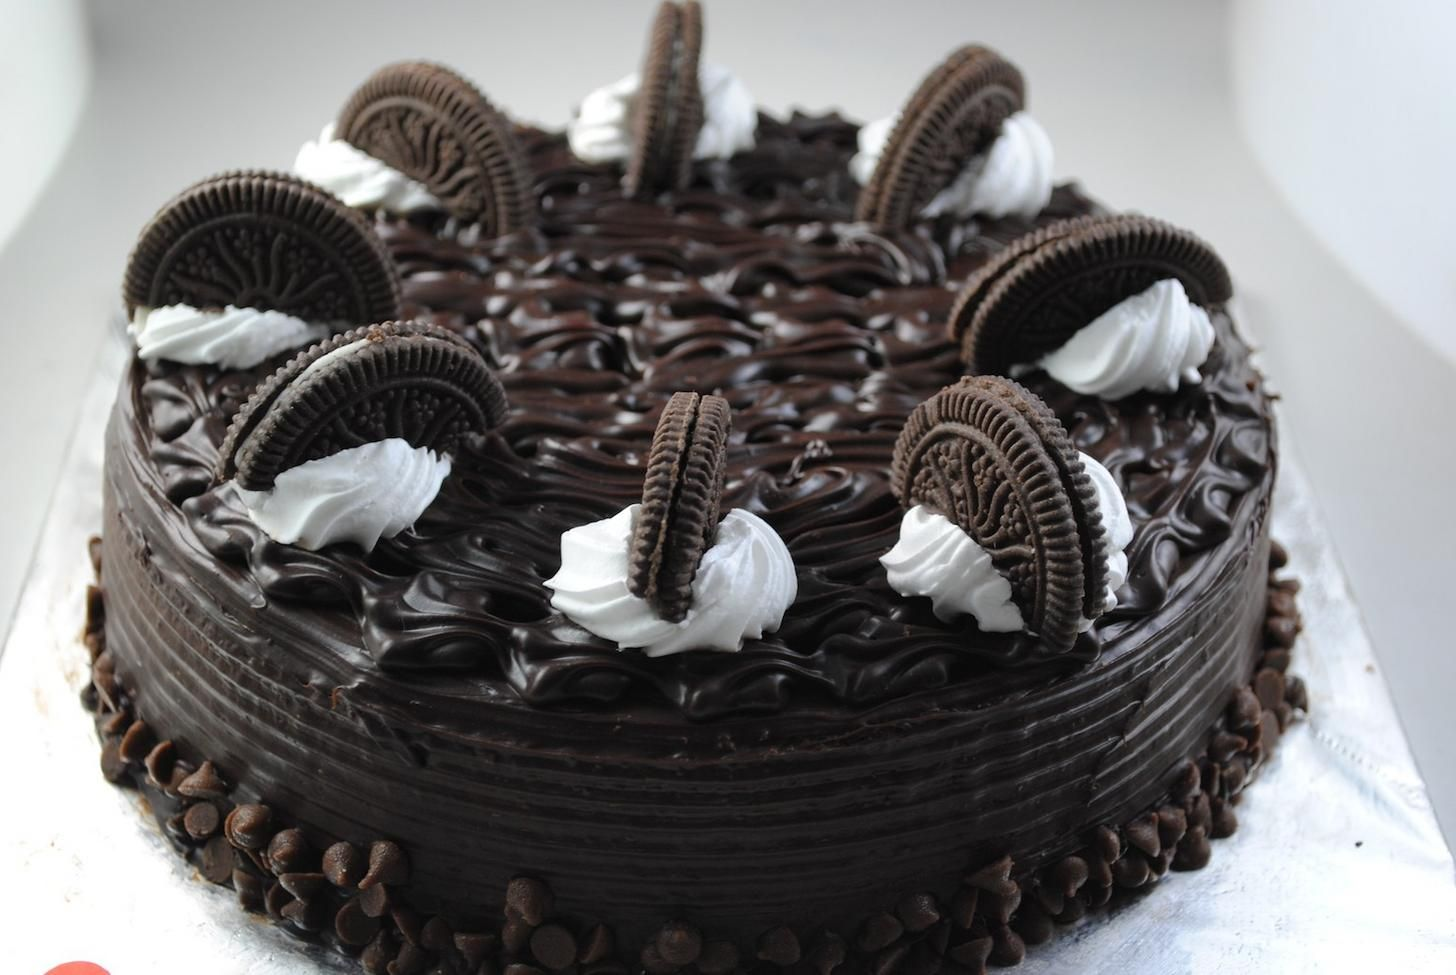 Surprise your father with a Special Cake on Father's Day from Kalpa Florist!   To buy cakes, please click on the below link :  http://www.kalpaflorist.com/product-category/fresh-cream-cake/  Contact No : 9216850252  Website : http://www.kalpaflorist.com/  #fathersdaycakesPunjab #sendcakestoPunjab #cakehomedeliveryJalandhar #caketofatherPhagwara #cakehomedeliveryKapurthala #localcakesshopJalandhar